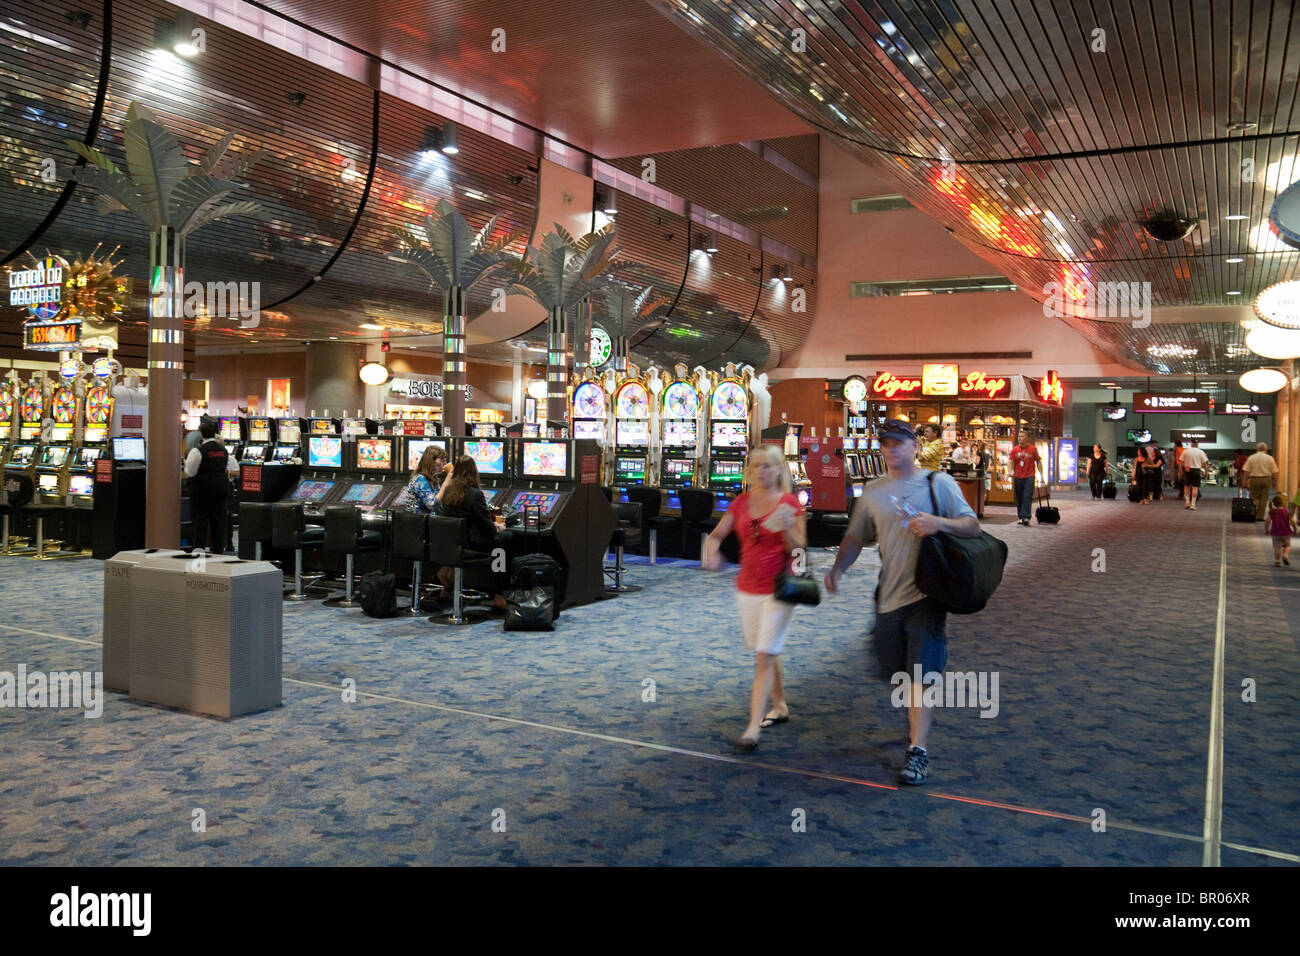 Used Slot Machines For Sale Las Vegas